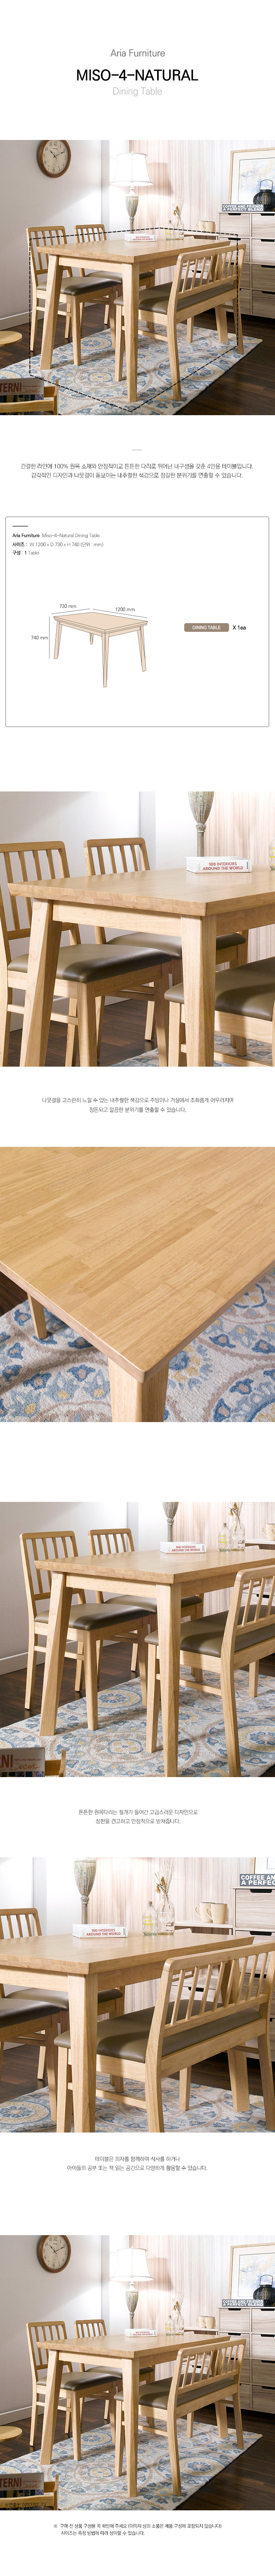 Miso-4-Natural_Dining-Table_191219.jpg